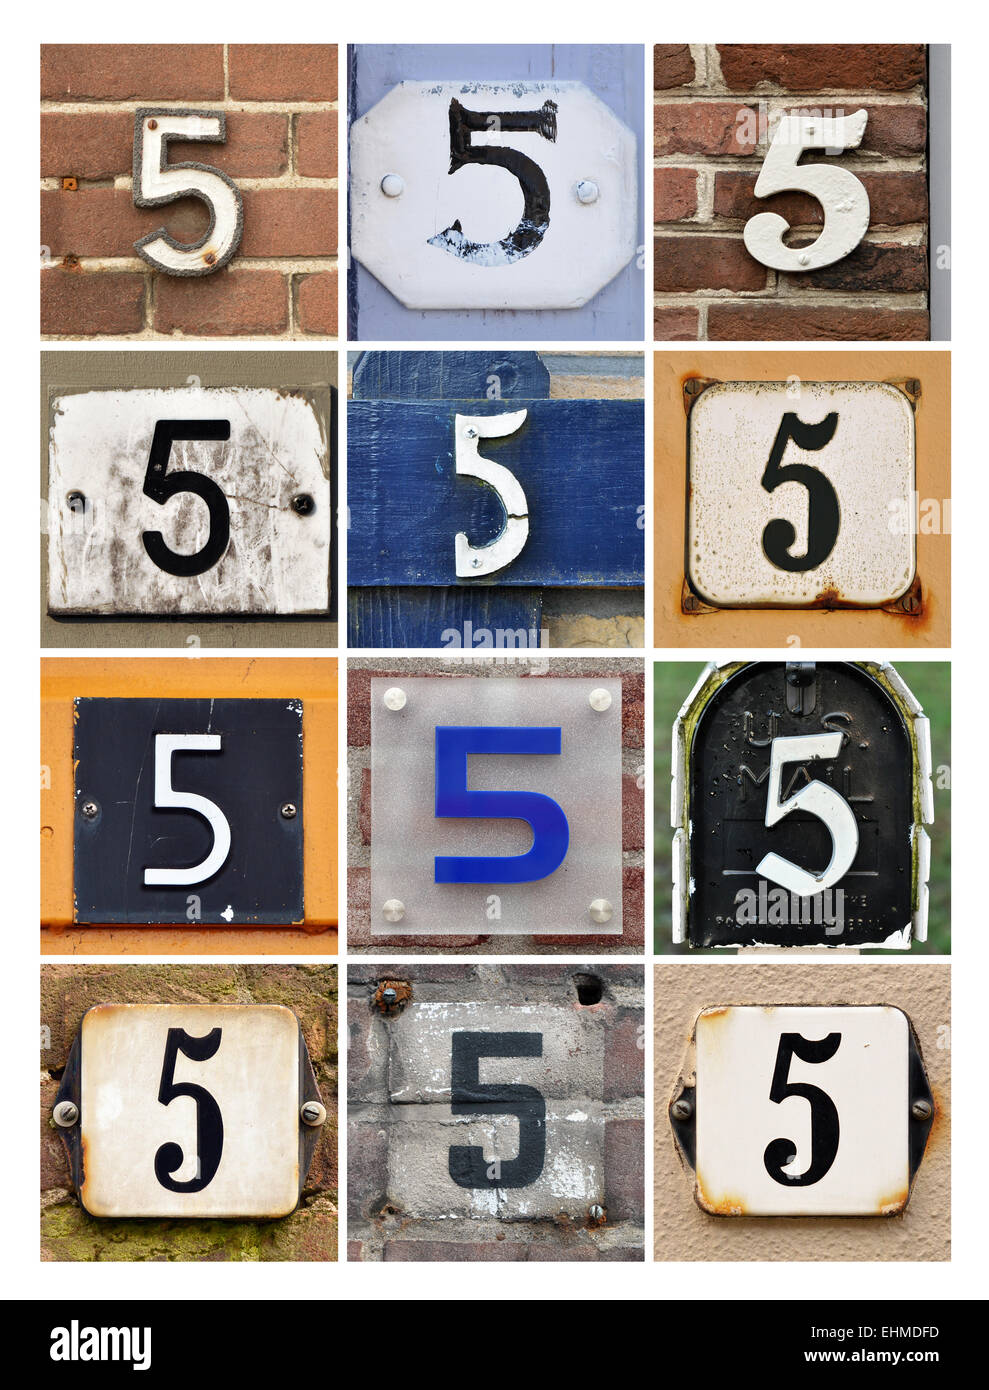 Number 5 - Collage of House Numbers Five - Stock Image